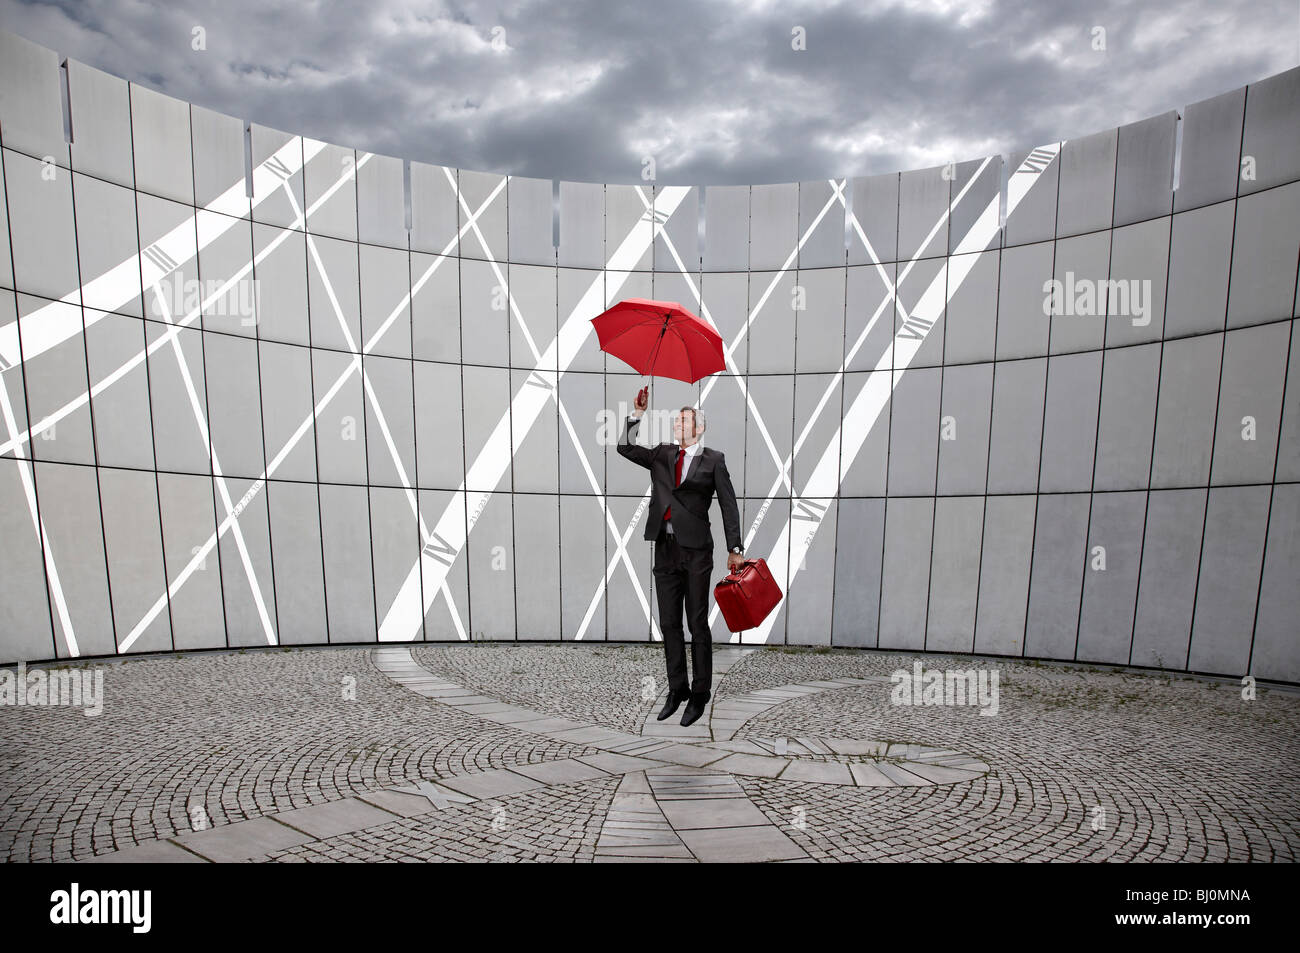 businessman with red suitcase and umbrella jumping - Stock Image